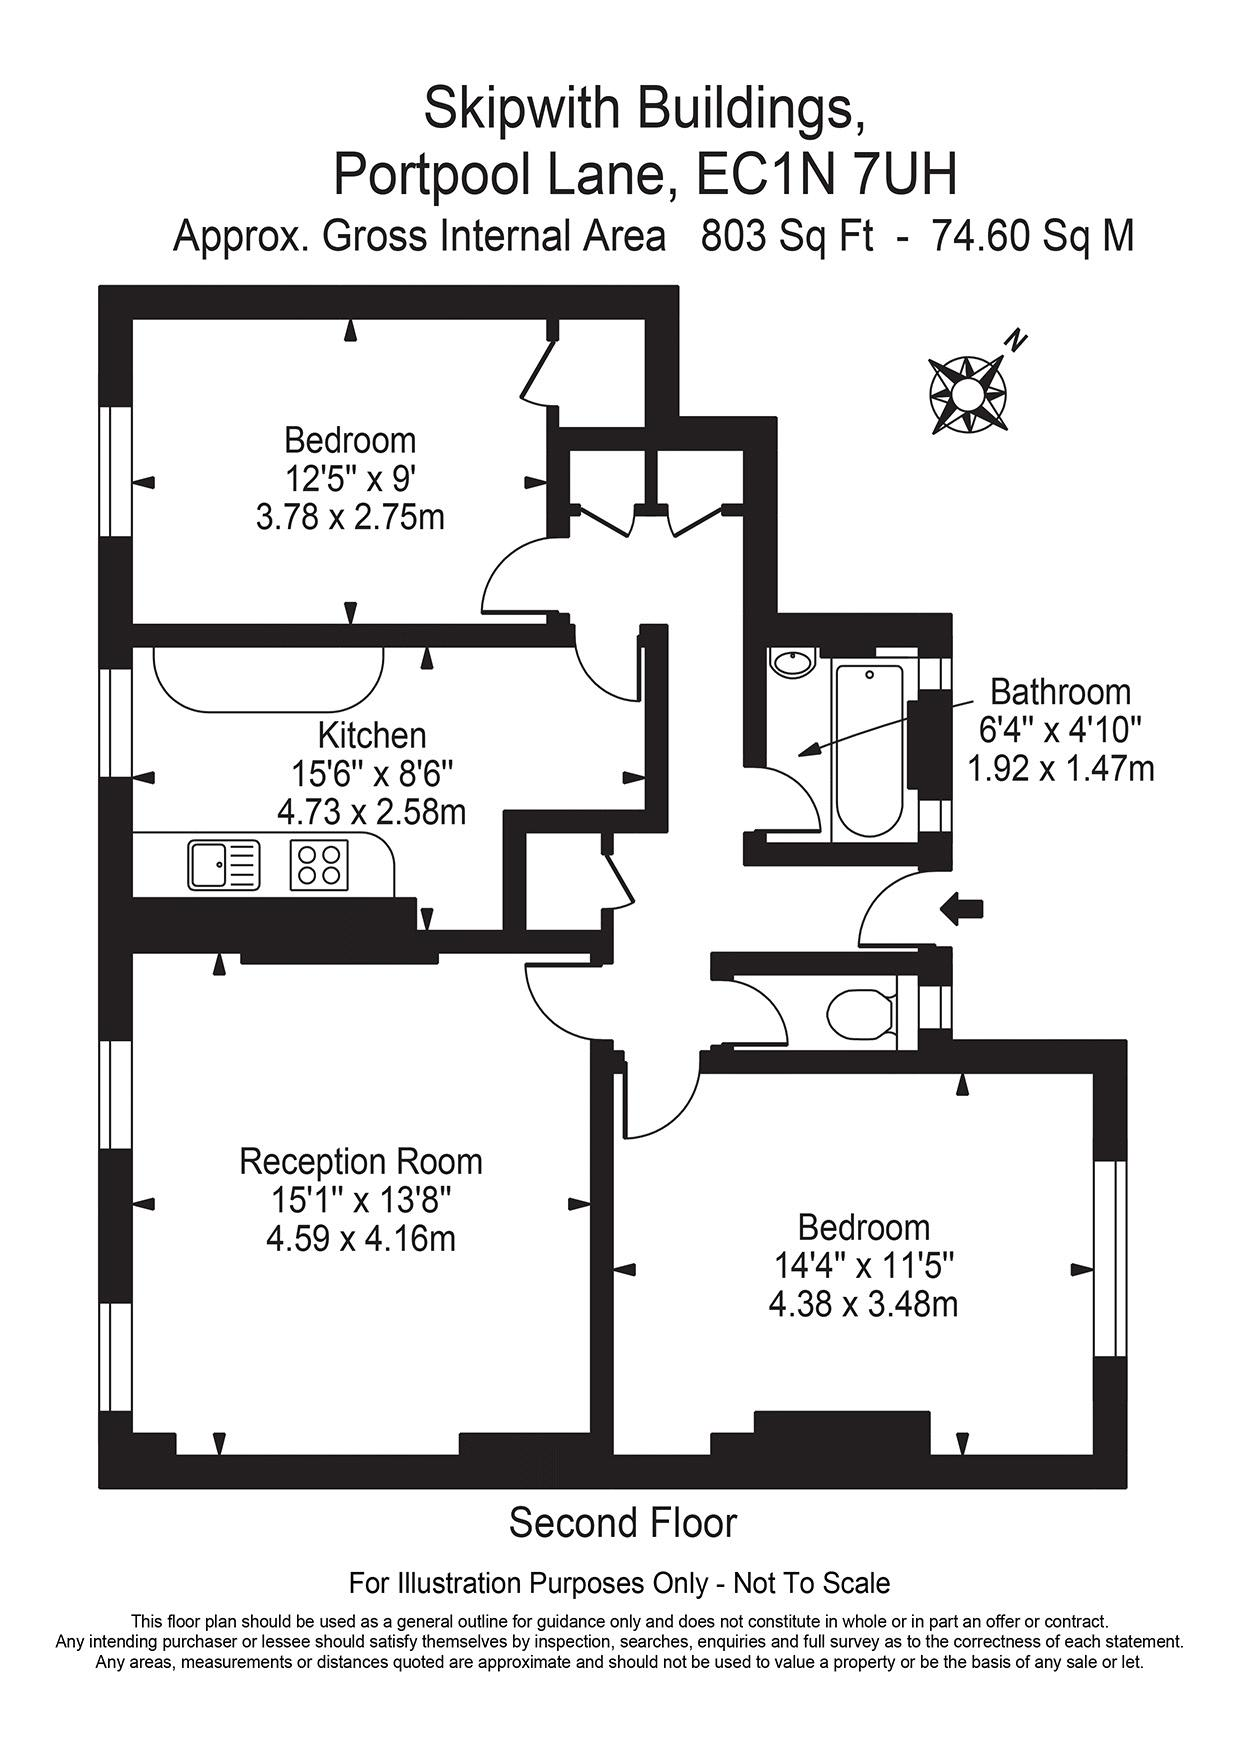 Floorplan - 25 Skipwith Building